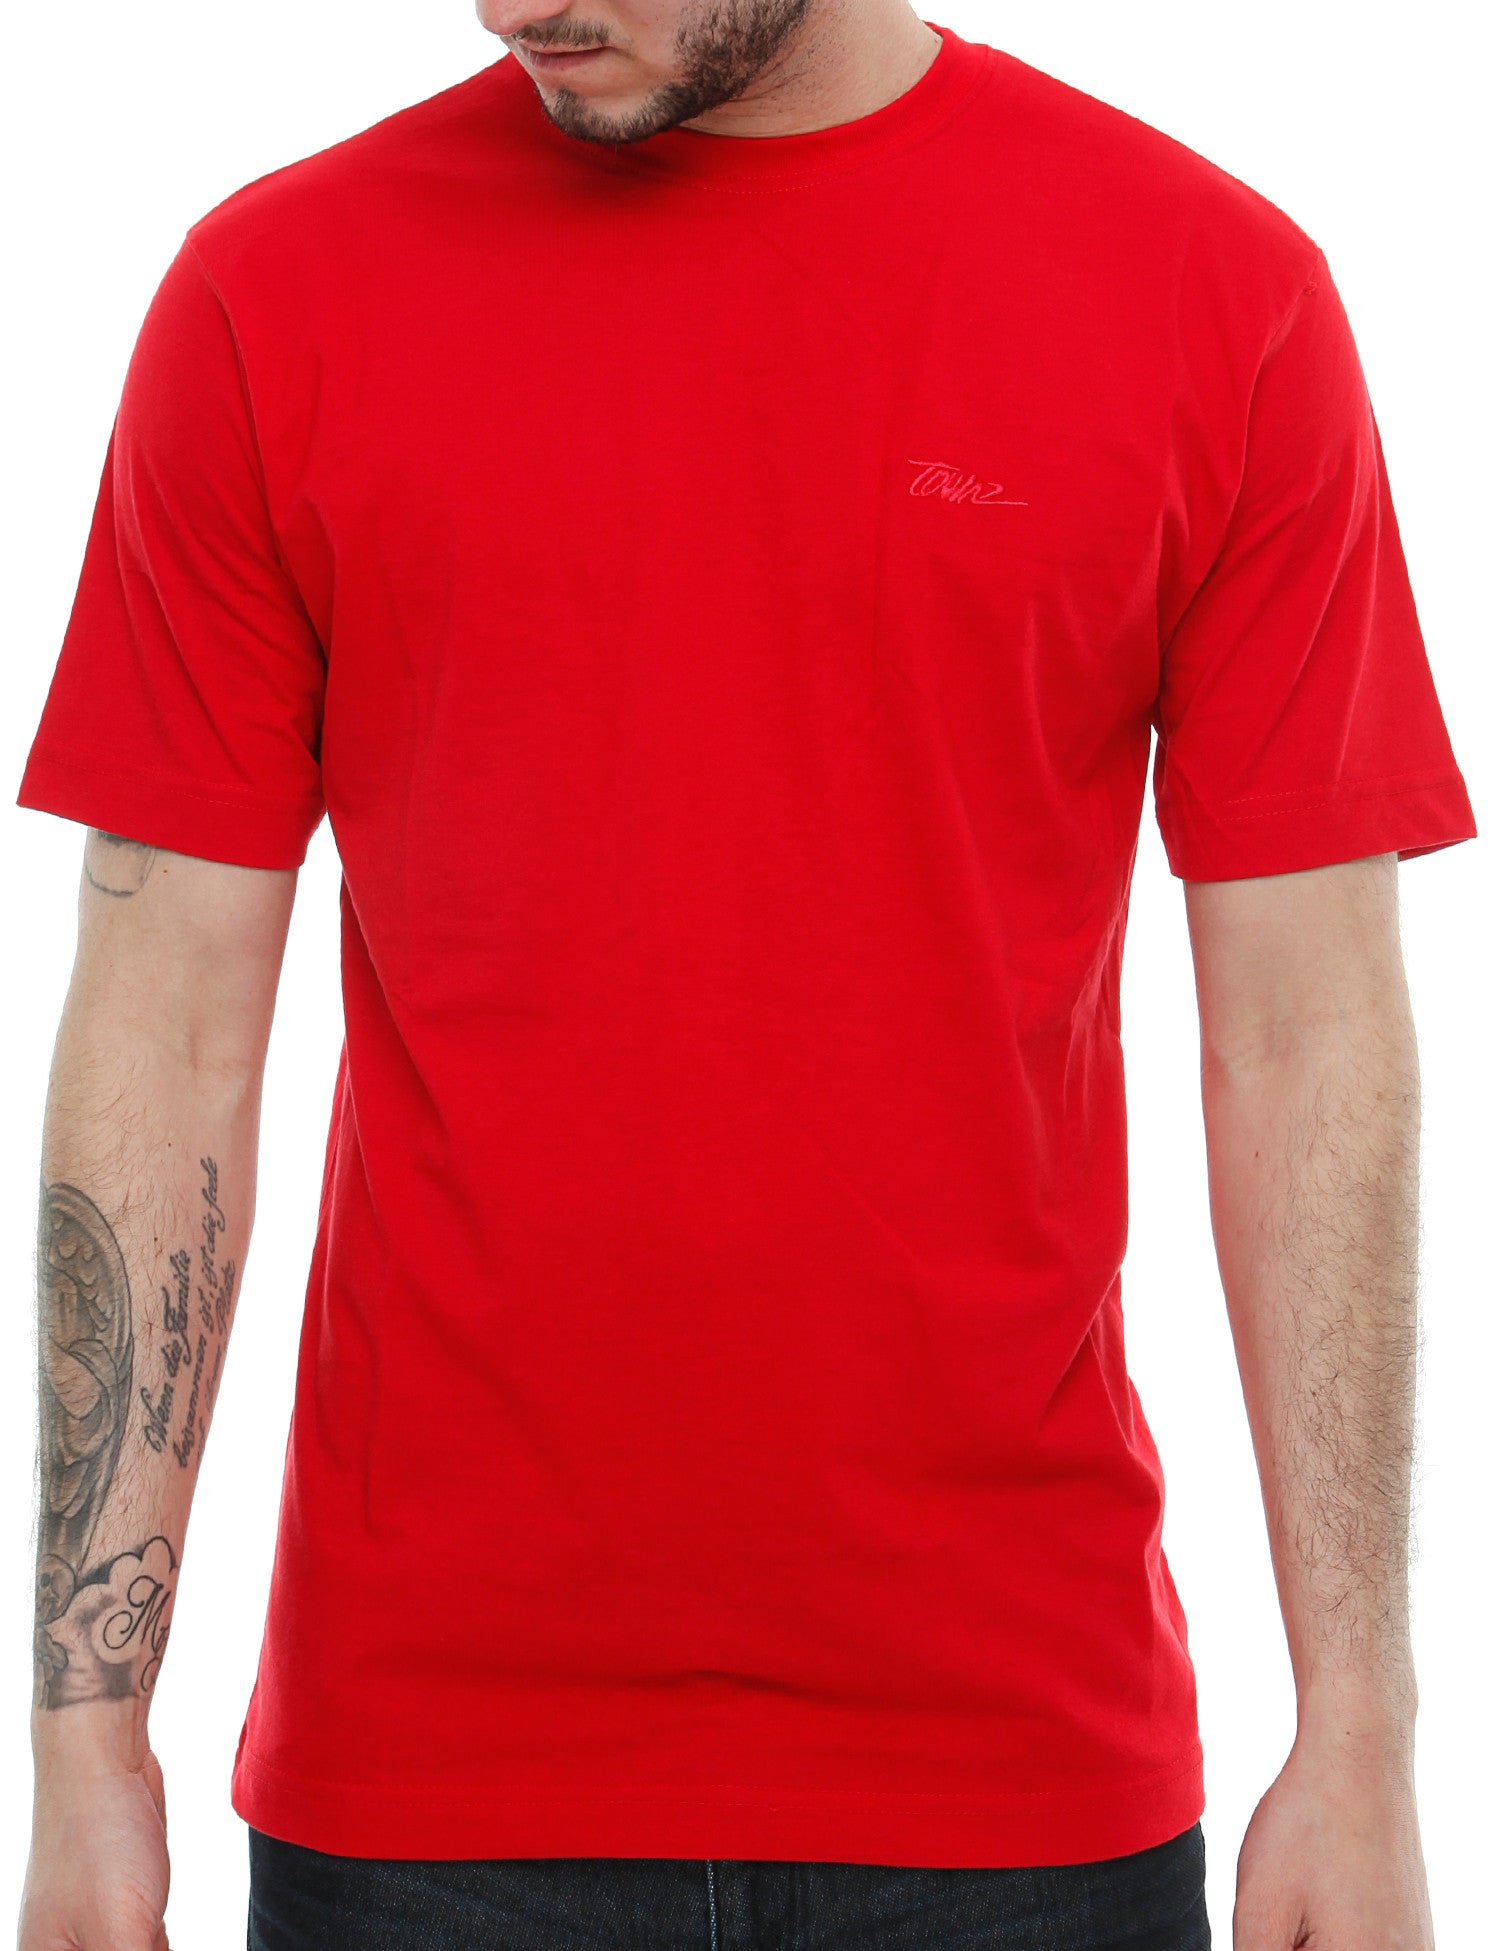 Townz Basic Emb  T-Shirt TNZ16-009 Red